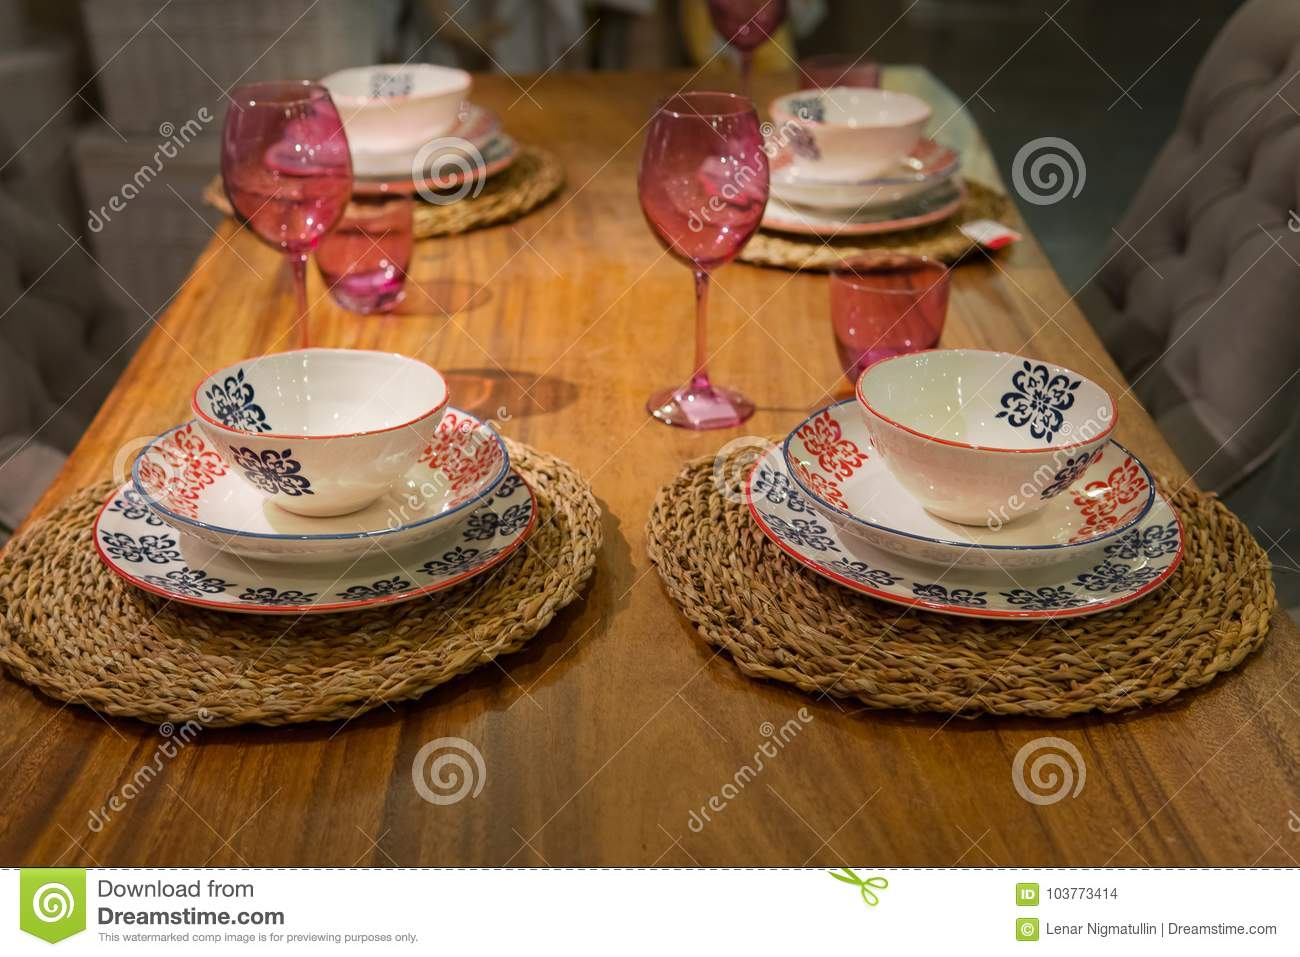 Wooden table with wine glasses and ceramic dishes